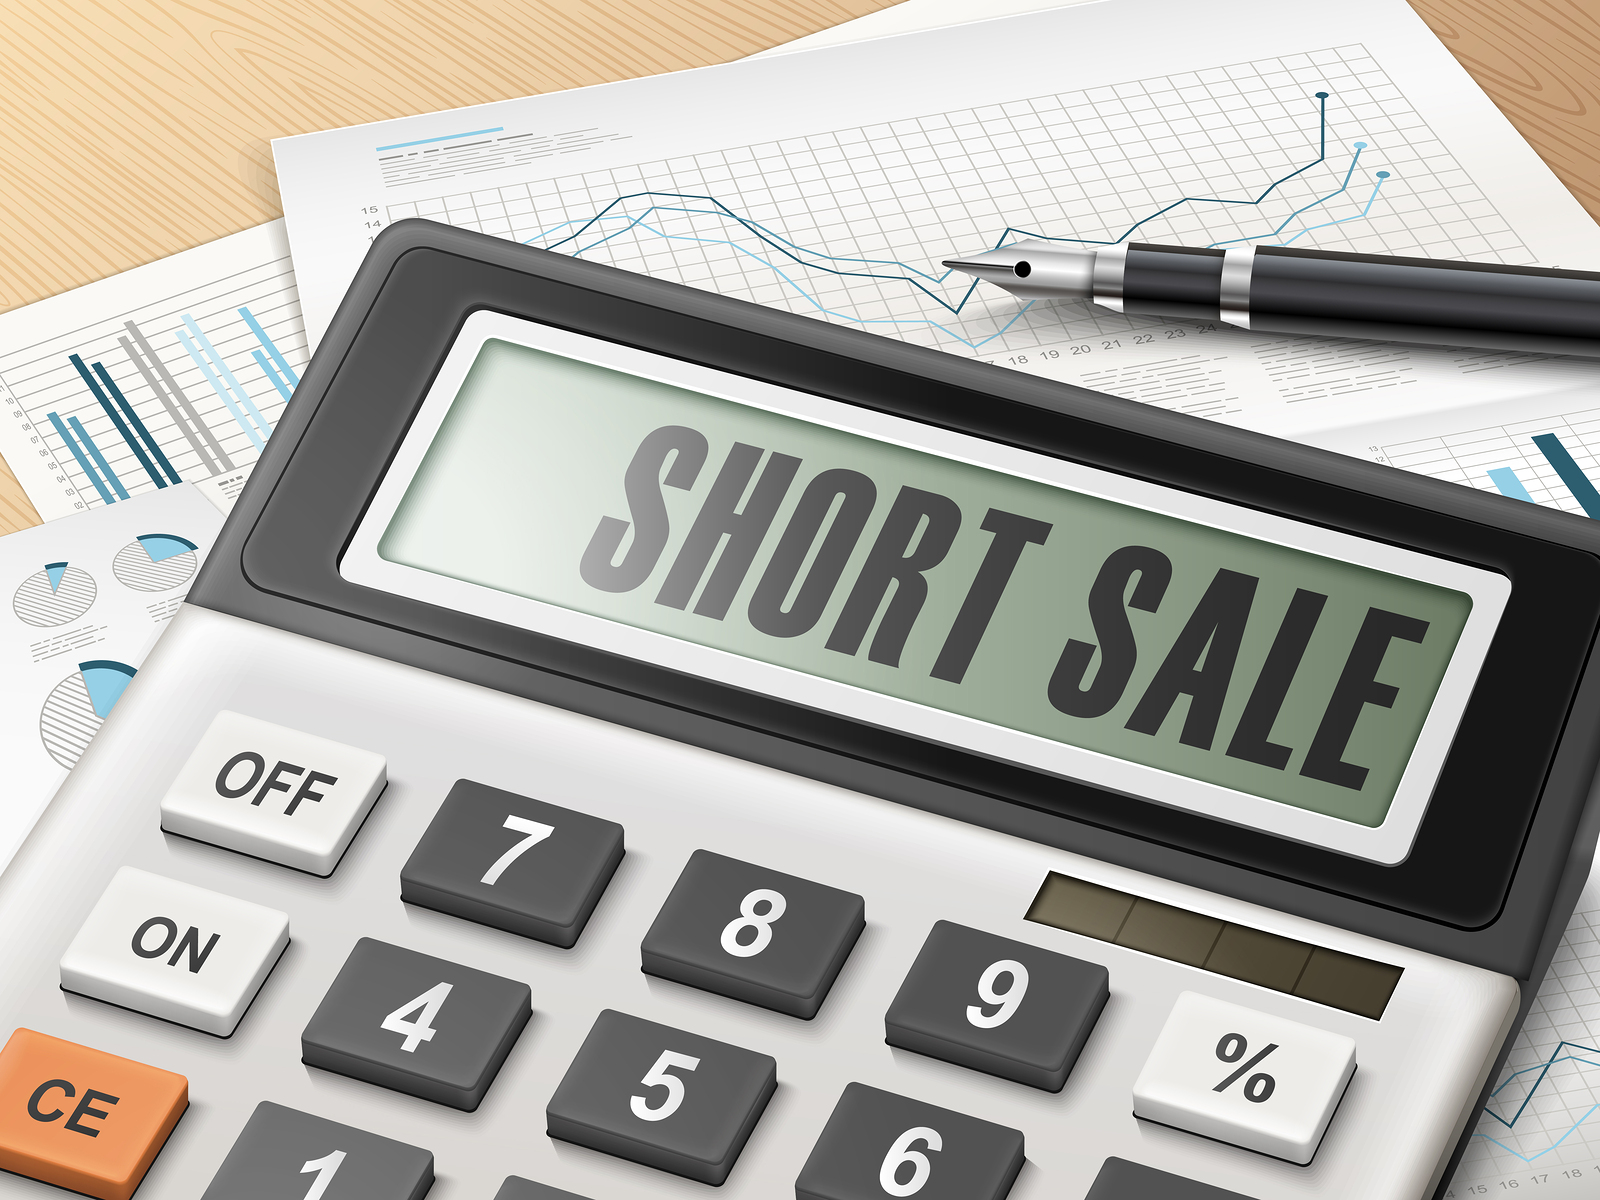 calculator with the word short sale on the display